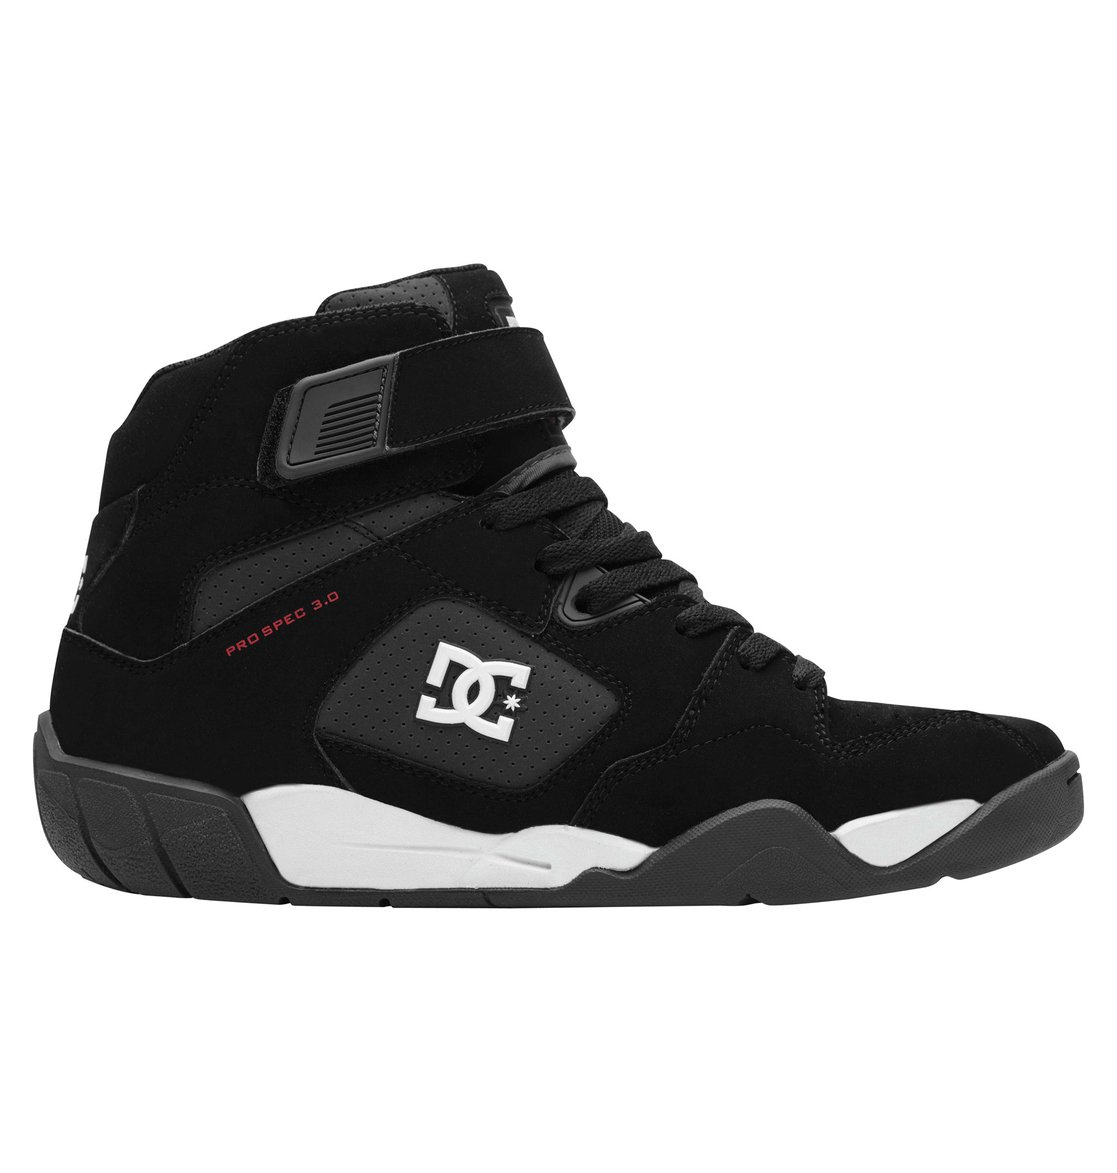 b017d0f4d60 0 Men s Pro Spec 3.0 Shoes 303369 DC Shoes